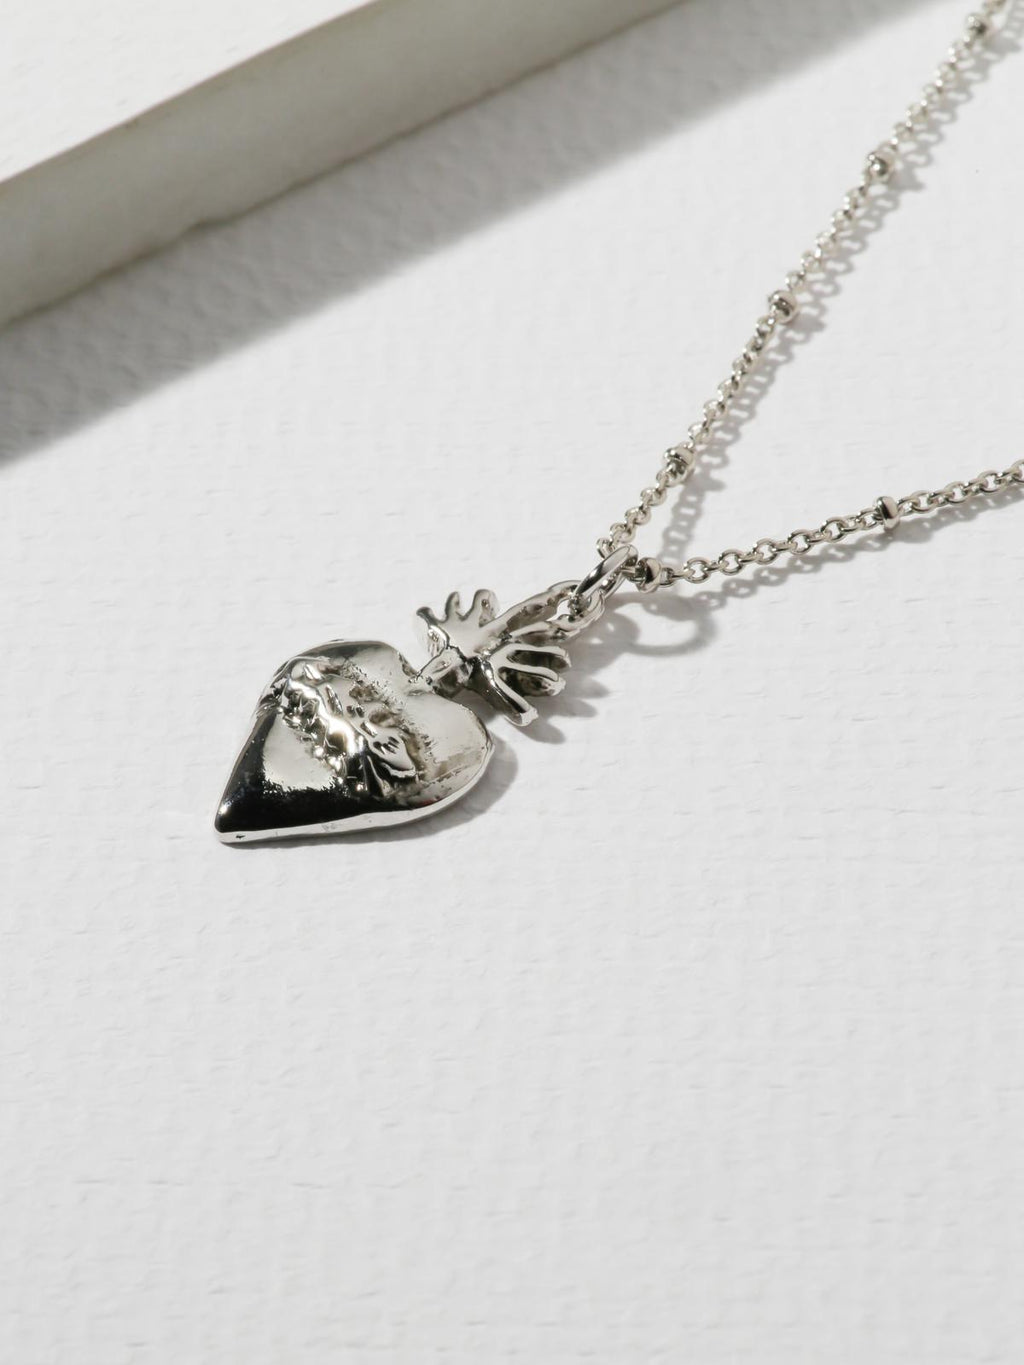 The Flame Sacred Heart Necklace